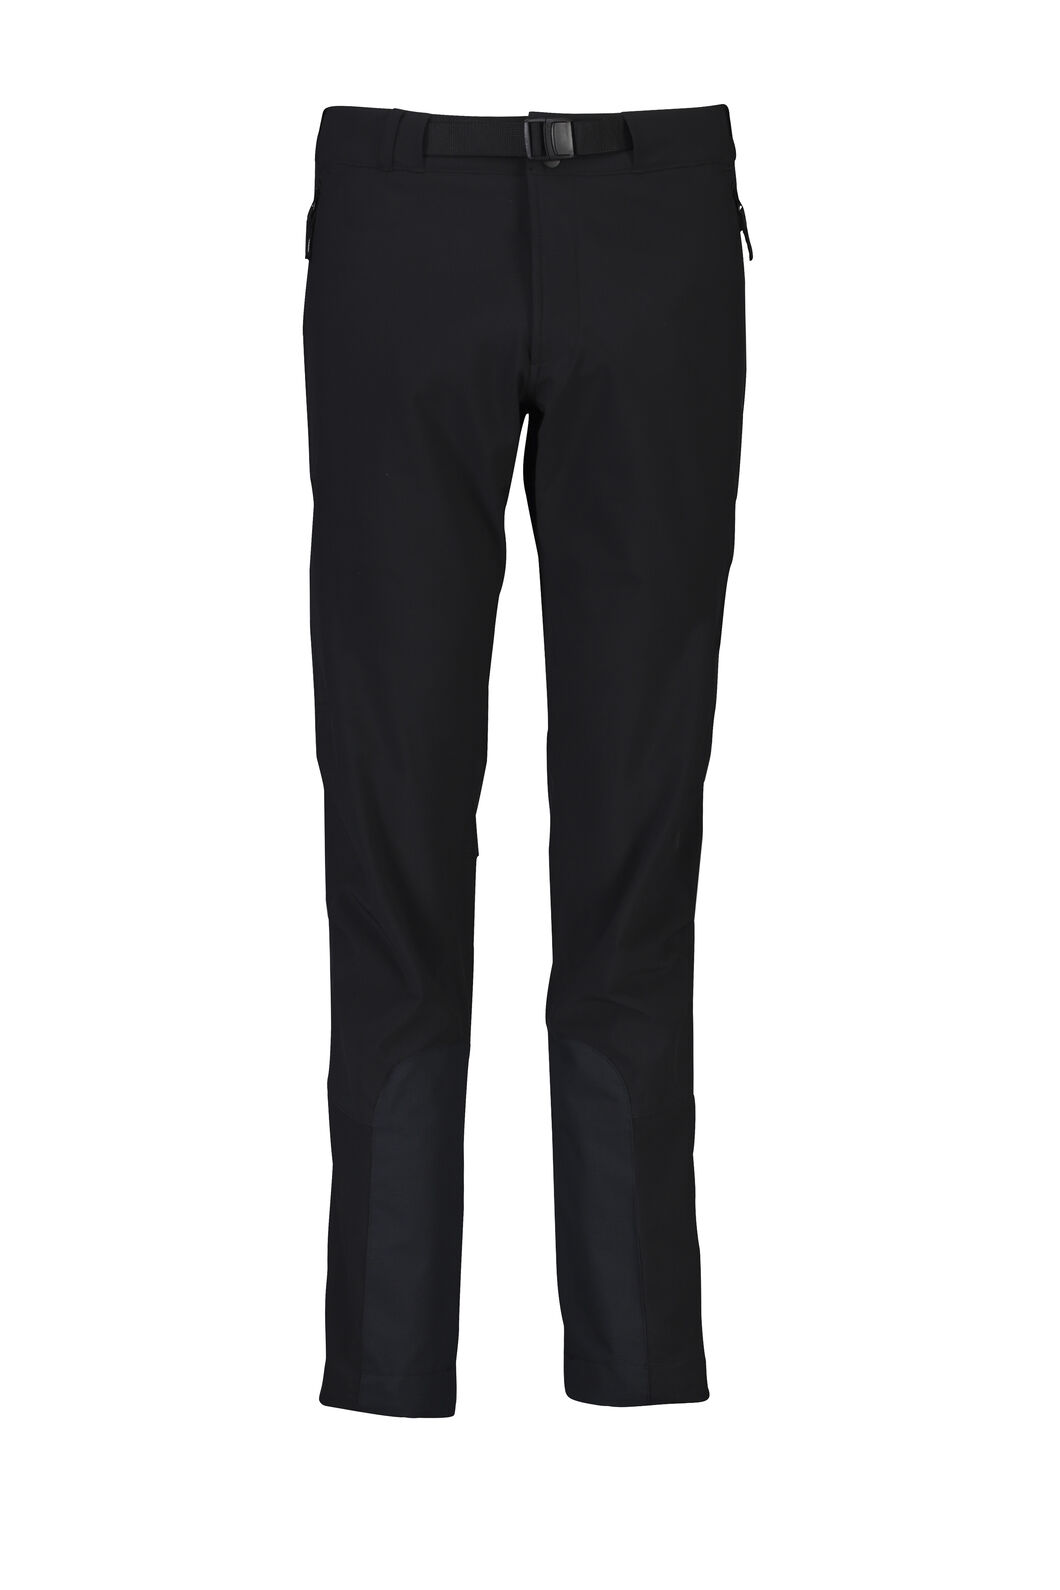 Macpac Fitzroy Alpine Series Softshell Pants — Women's, Black, hi-res